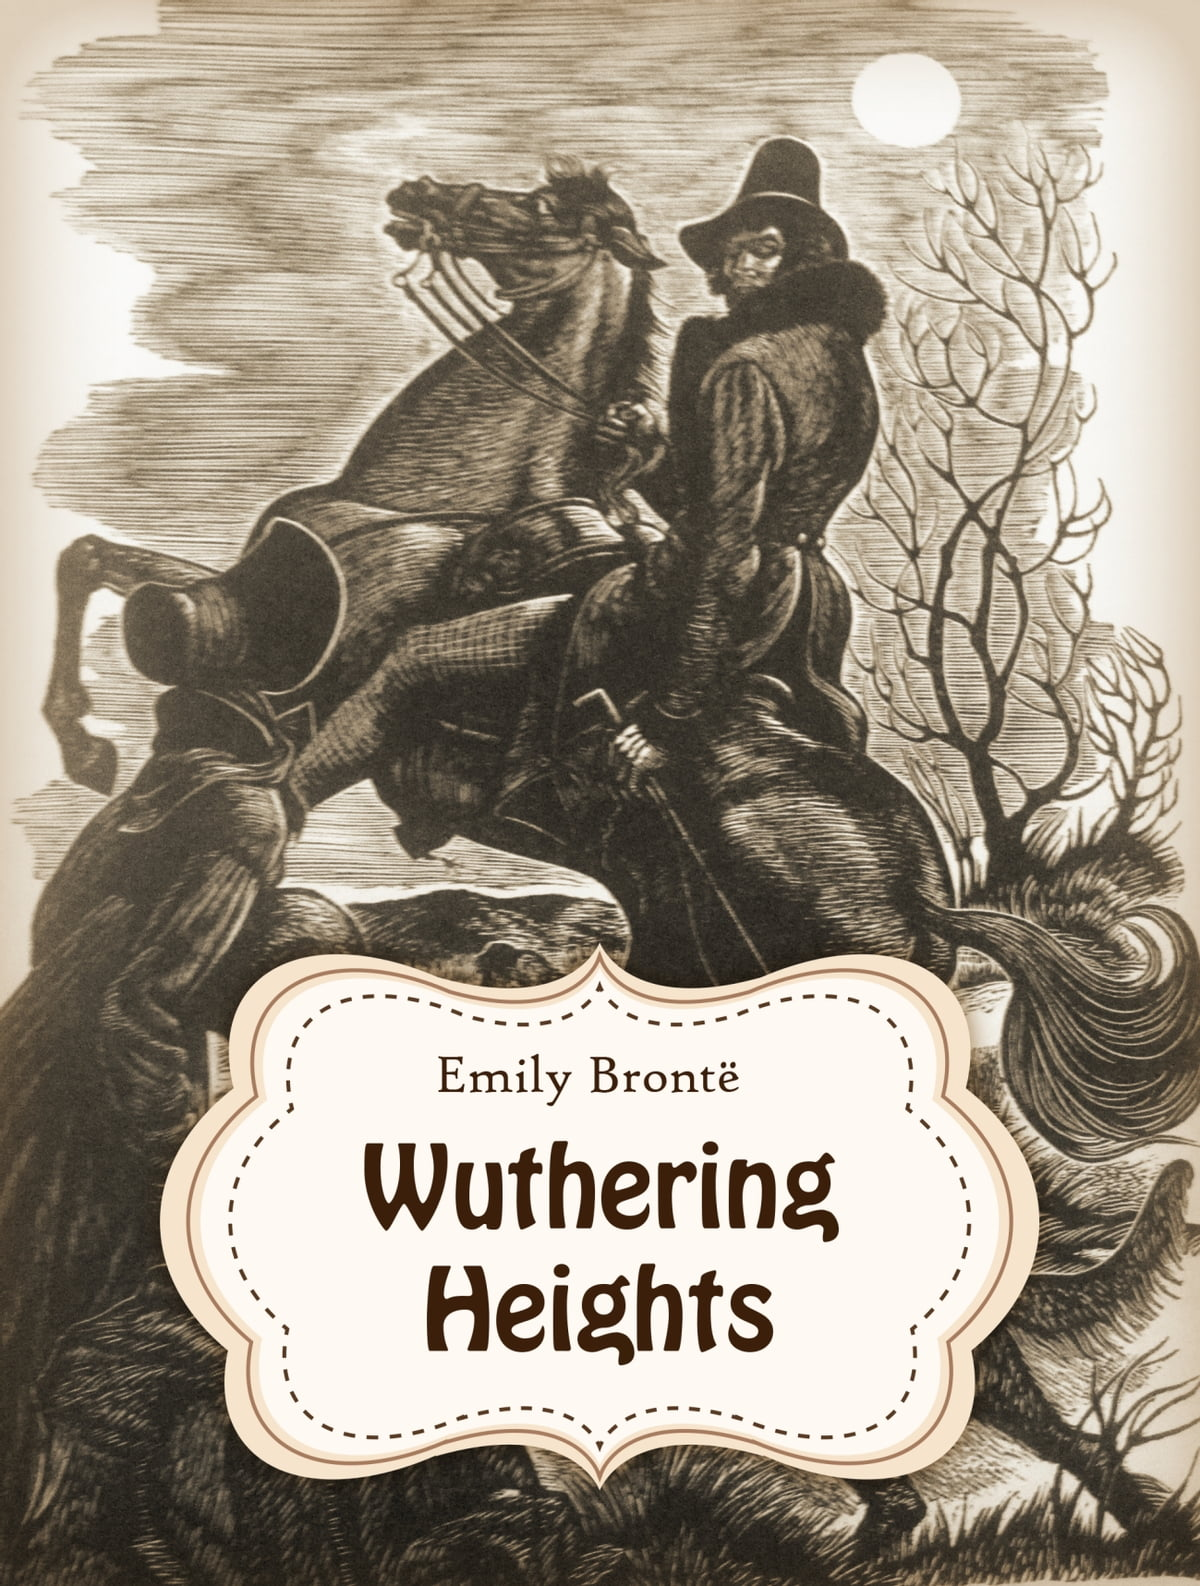 nelly dean as a reliable narrator in the novel wuthering heights by emily bronte Ellen nelly dean is a female character in emily brontë's novel wuthering heights she is the main narrator for the story, and gives key eyewitness accounts as to what happens between the characters.